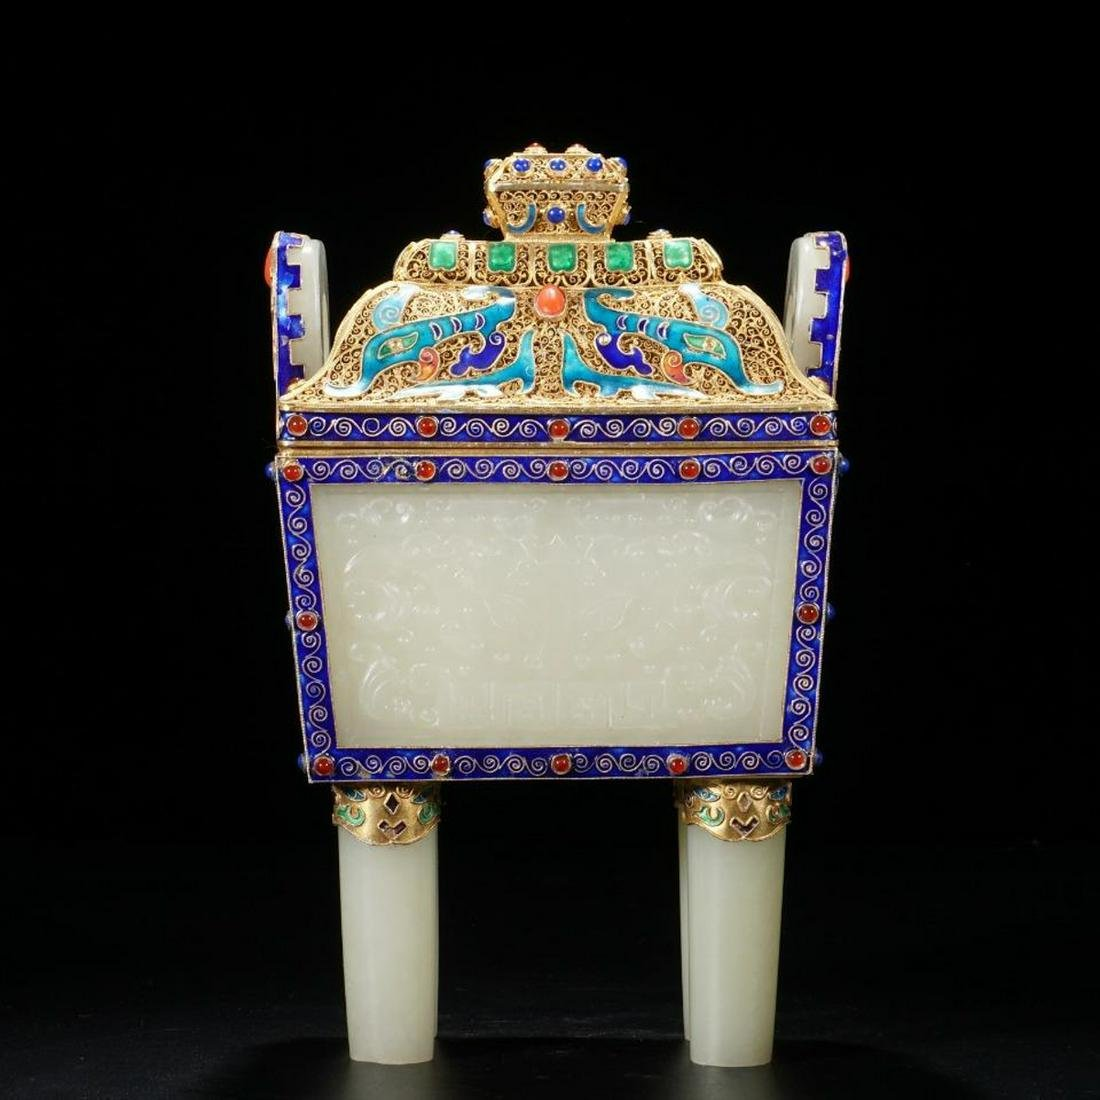 A HETIAN JADE ORNAMENT EMBEDED CLOISONNE